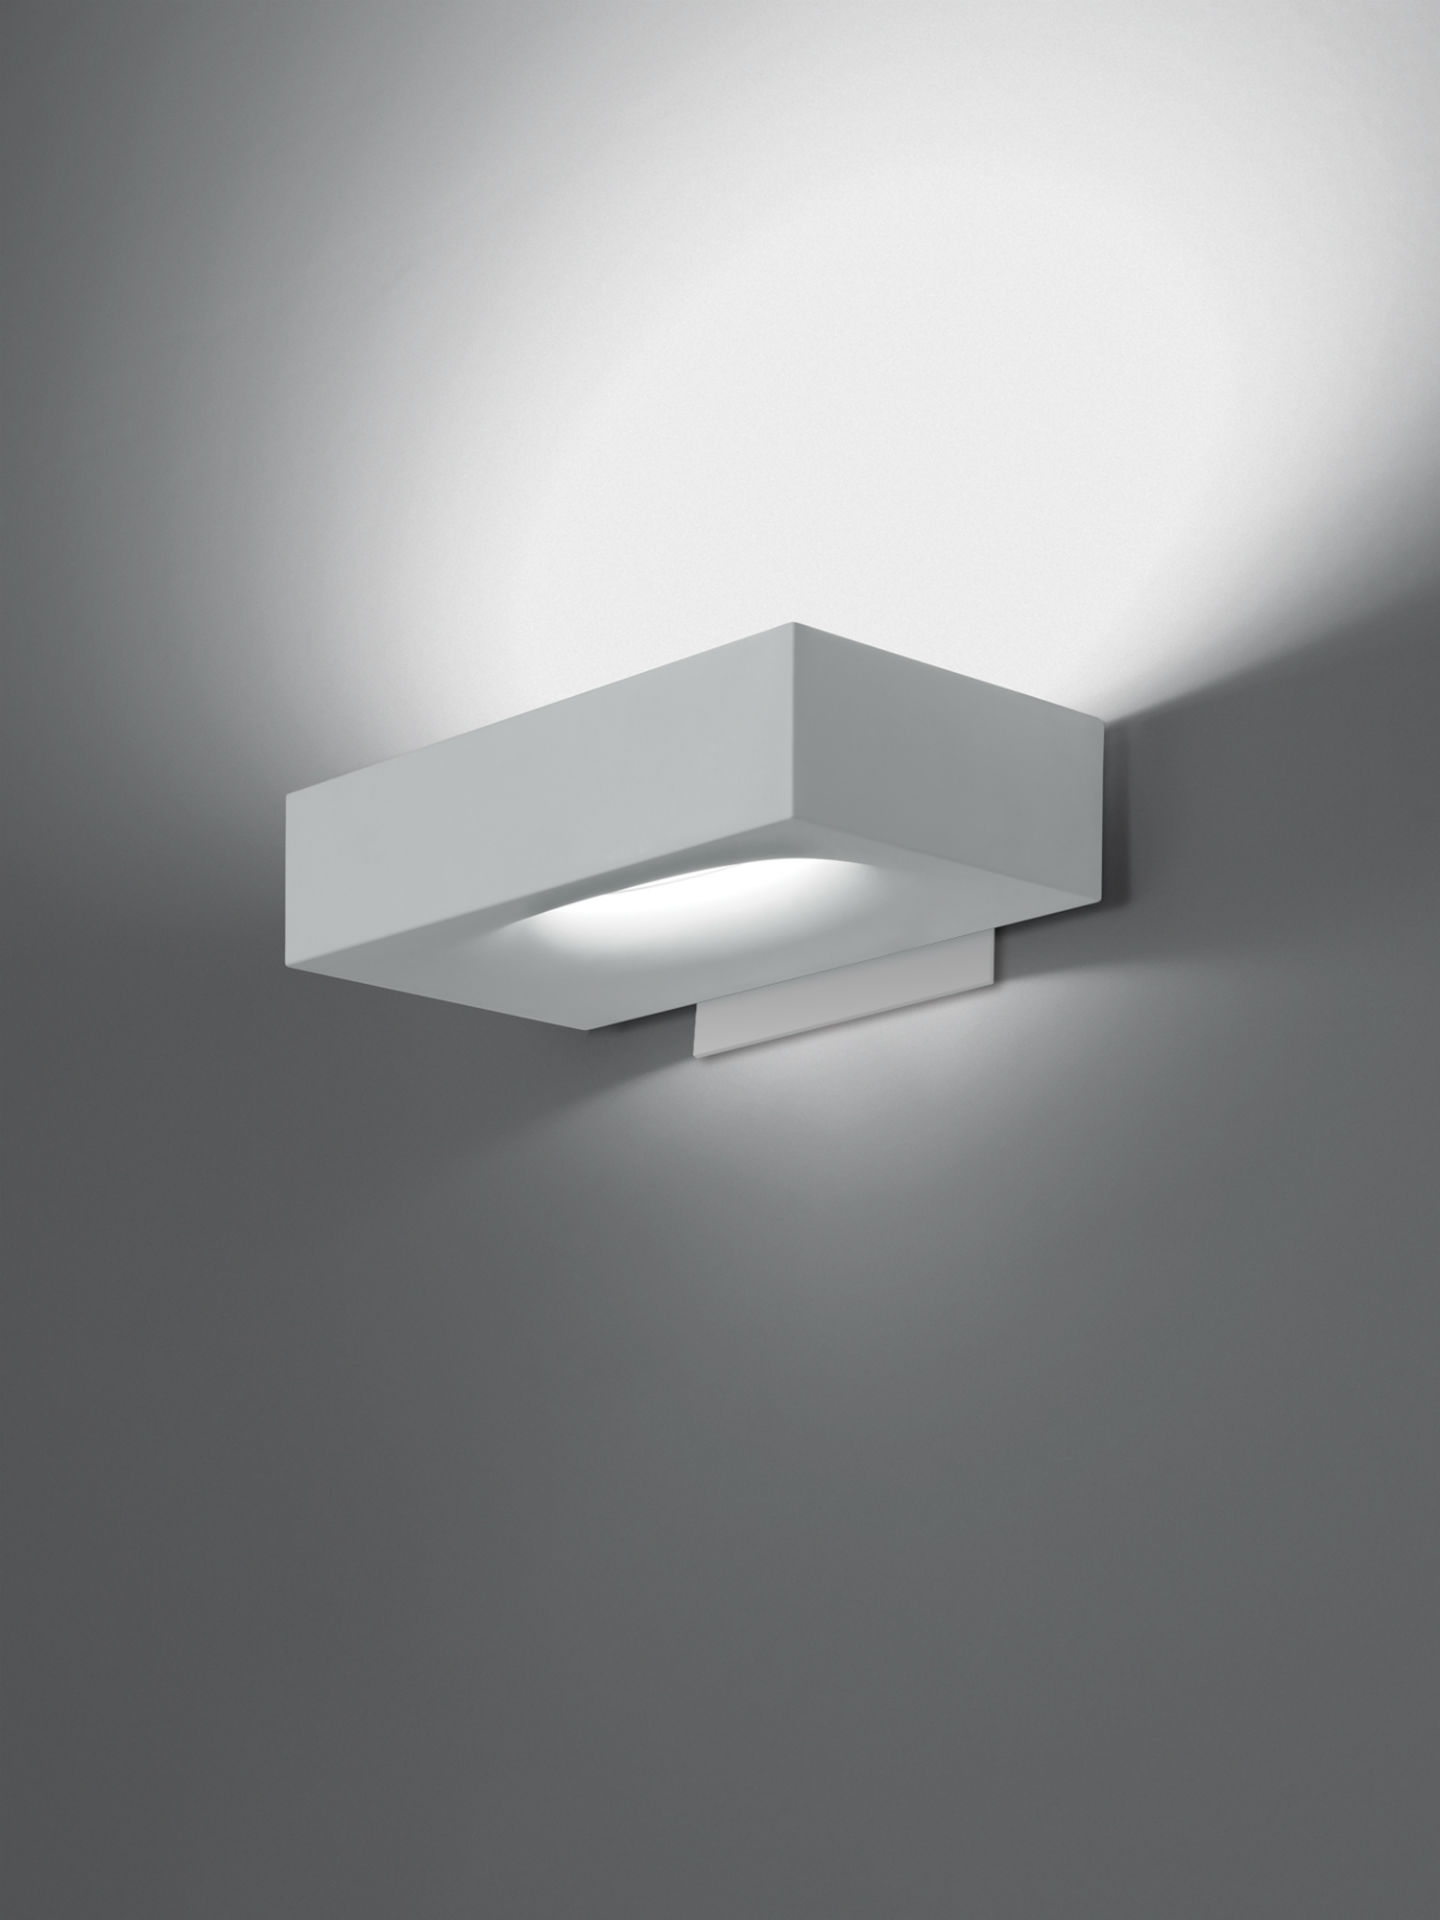 Melete Applique 1x230w R7s (HL) regulable bianco